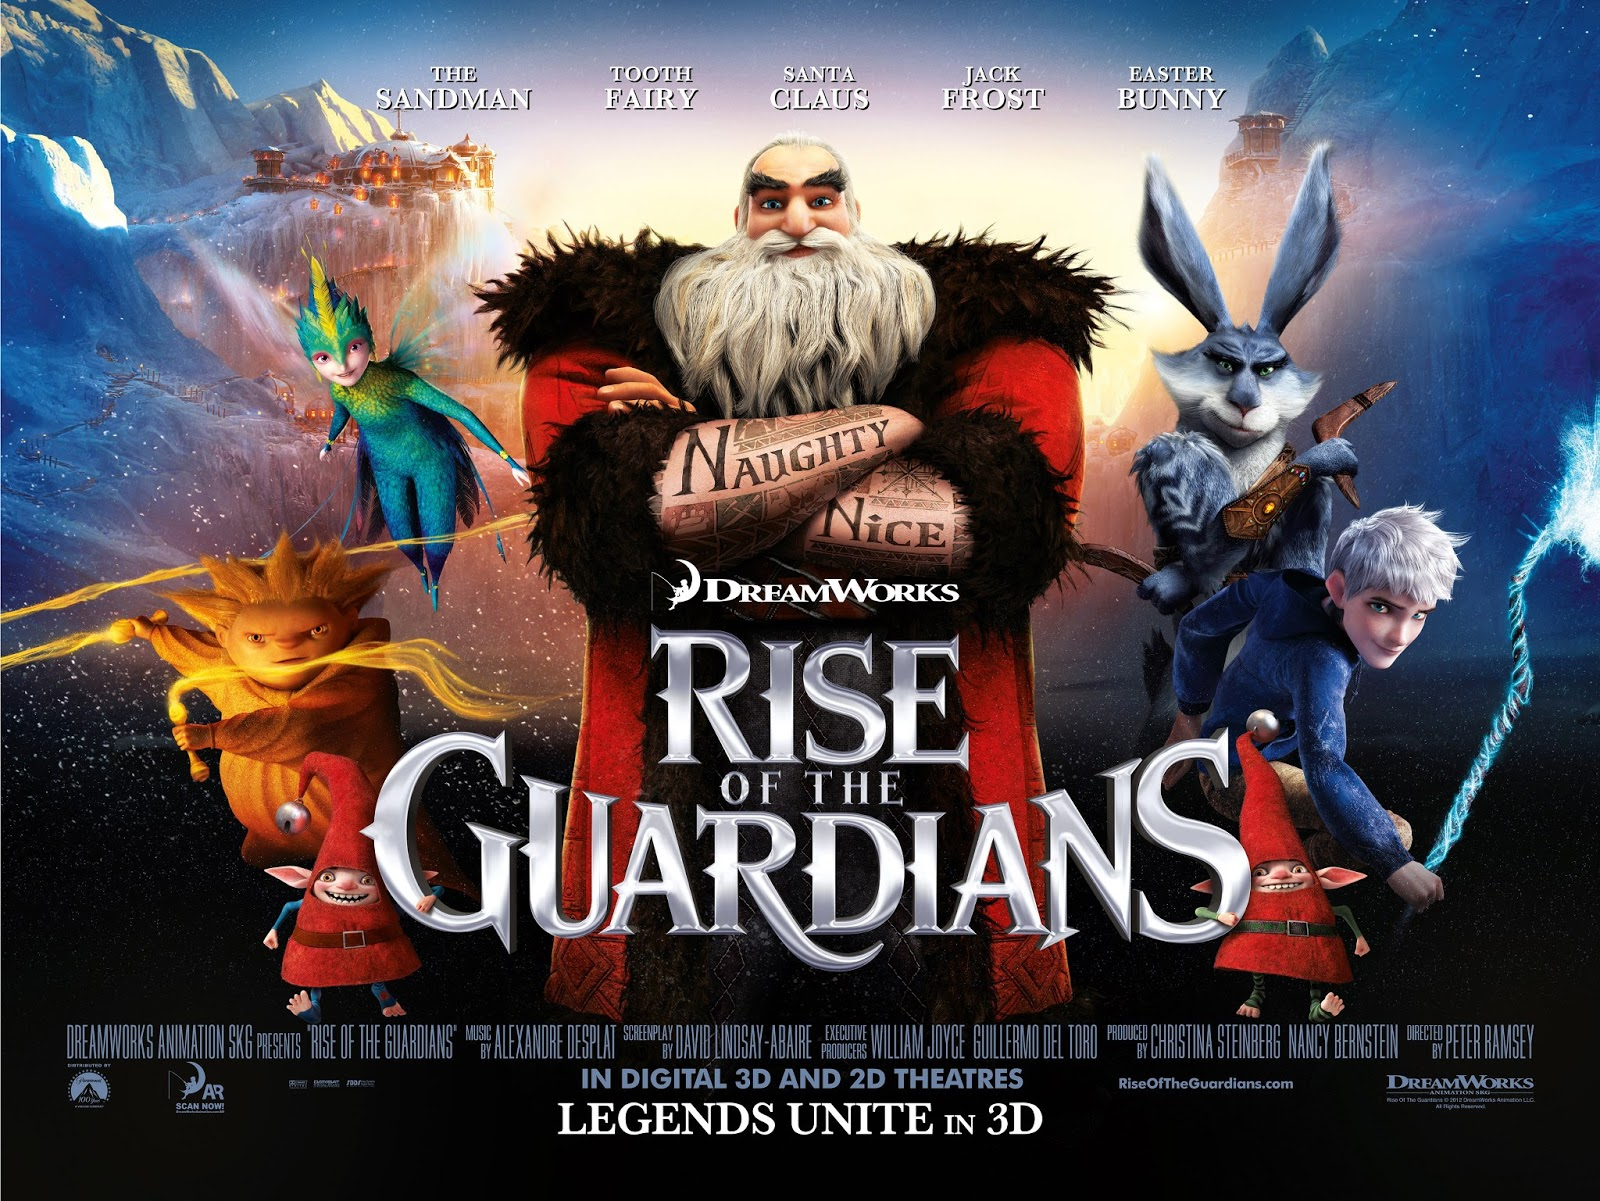 rise of the guardians full movie hd free download